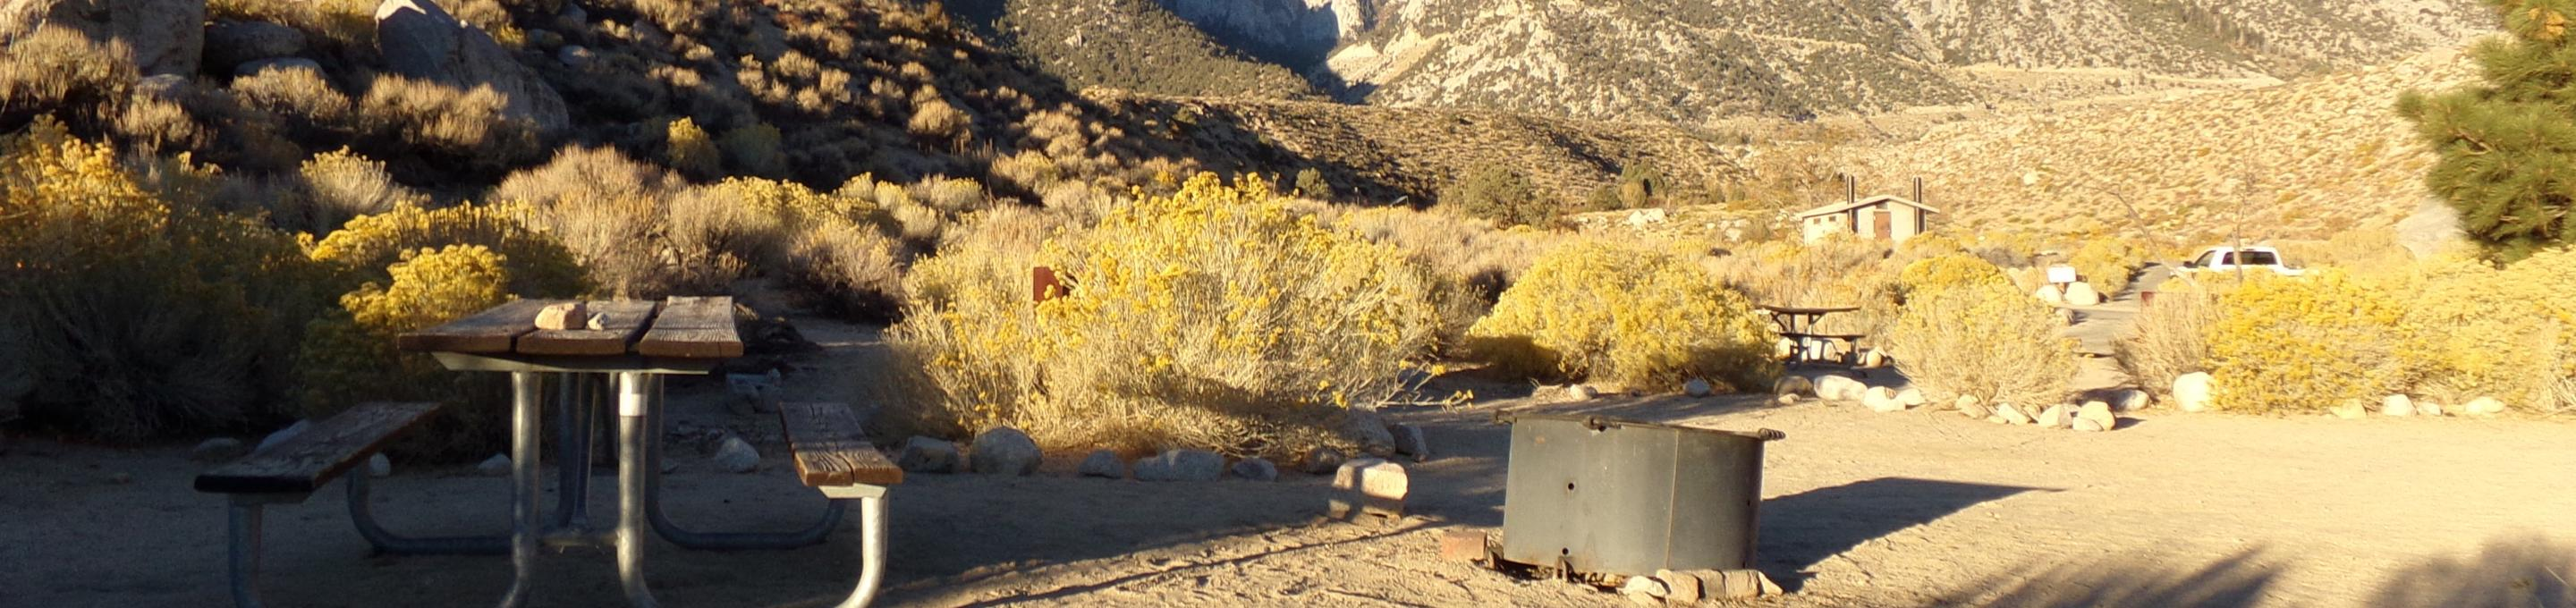 Lone Pine Campground site #04 featuring picnic area, fire pit, and camping space.